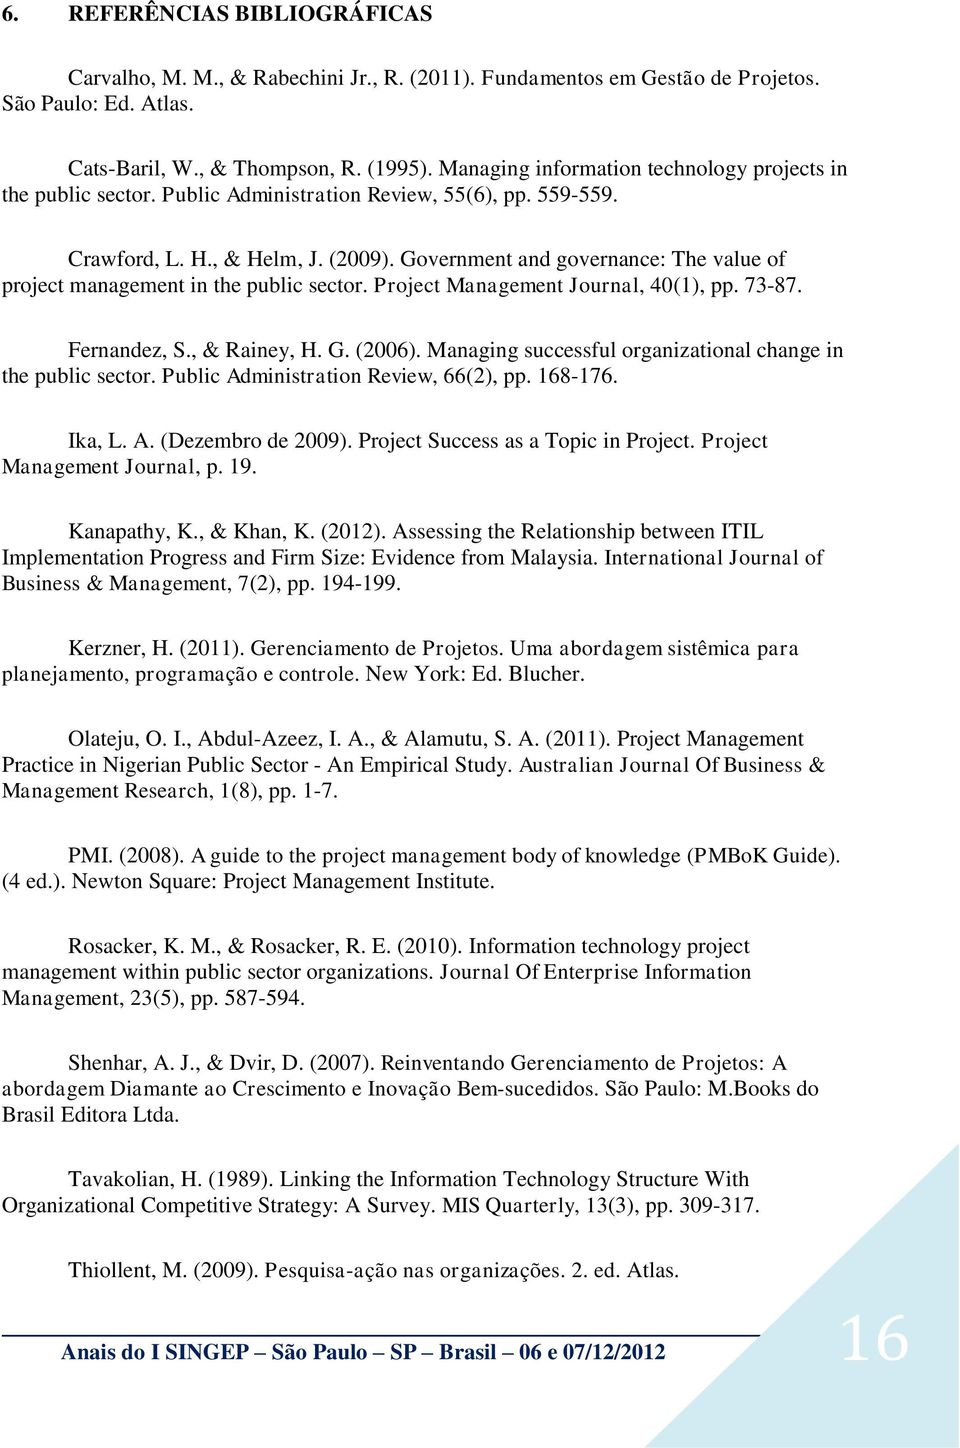 Government and governance: The value of project management in the public sector. Project Management Journal, 40(1), pp. 73-87. Fernandez, S., & Rainey, H. G. (2006).